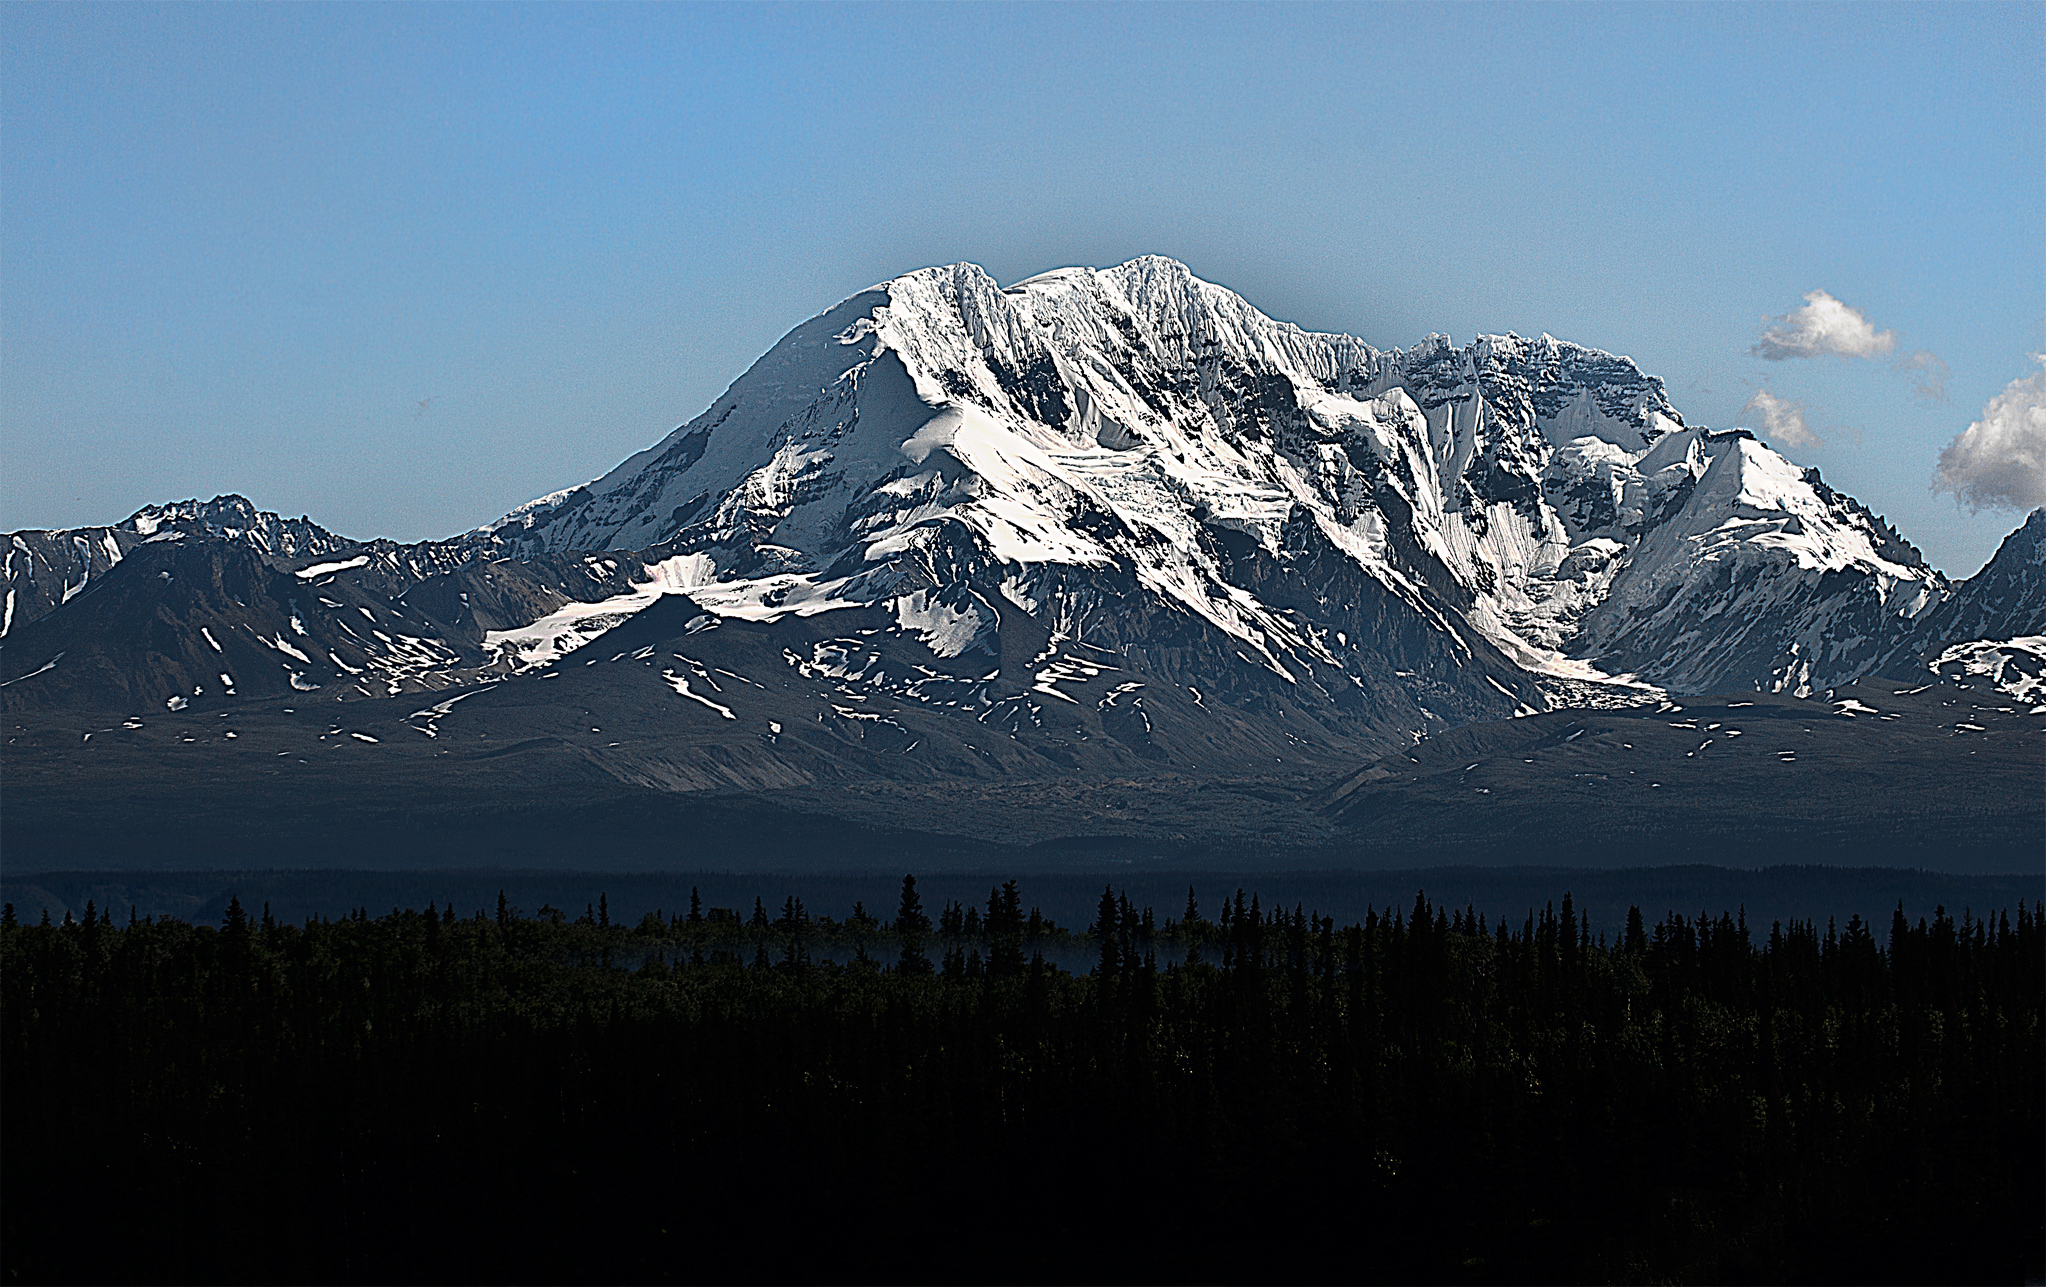 Mt. Wrangell stands alone in Wrangell-St.Elias National Park